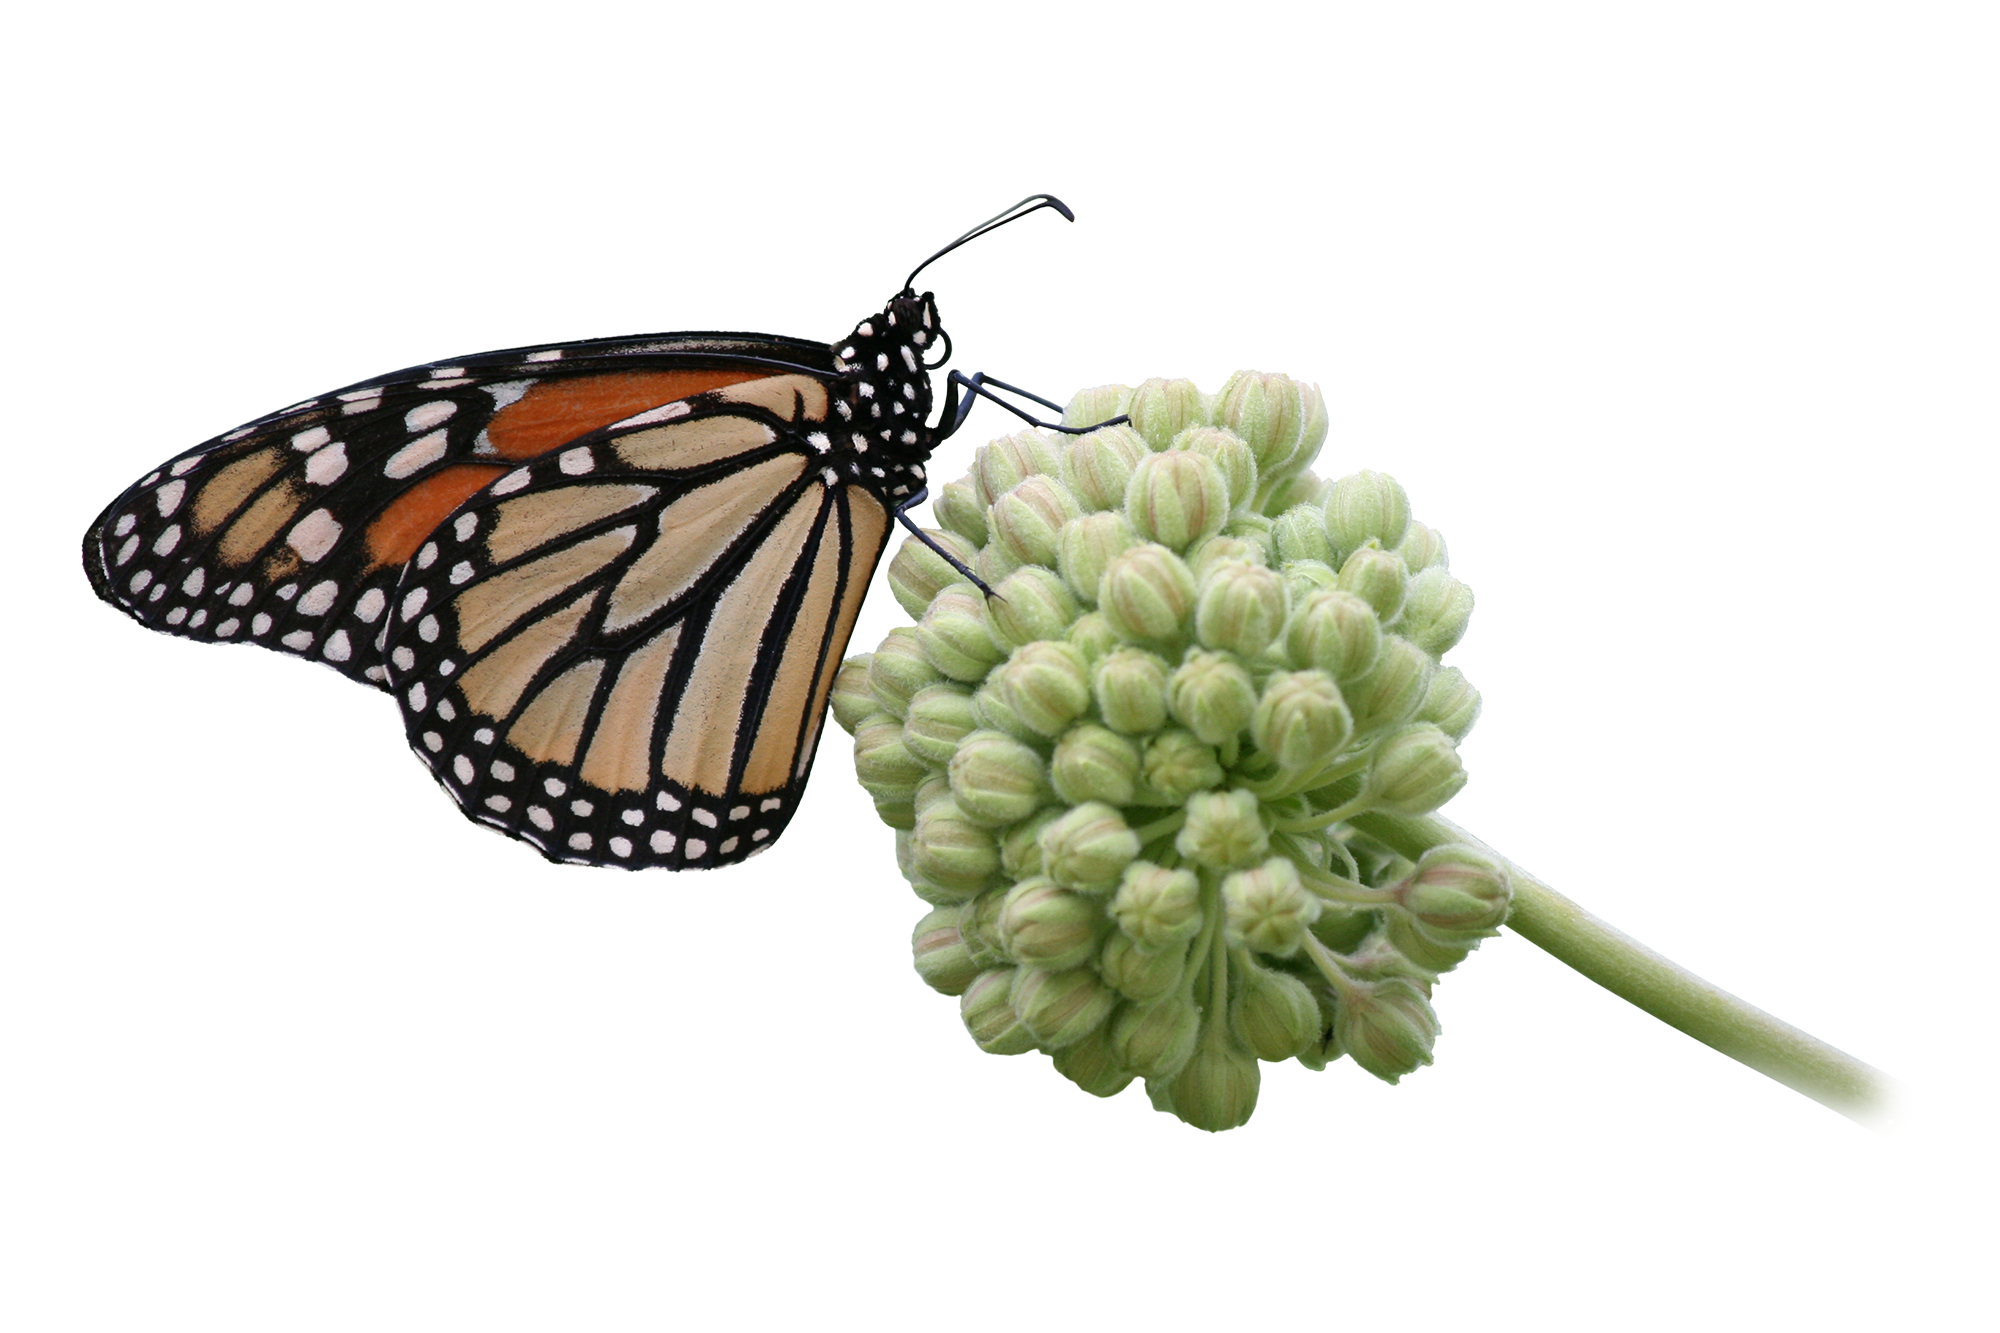 A monarch butterfly perched on a cluster of milkweed flowers.